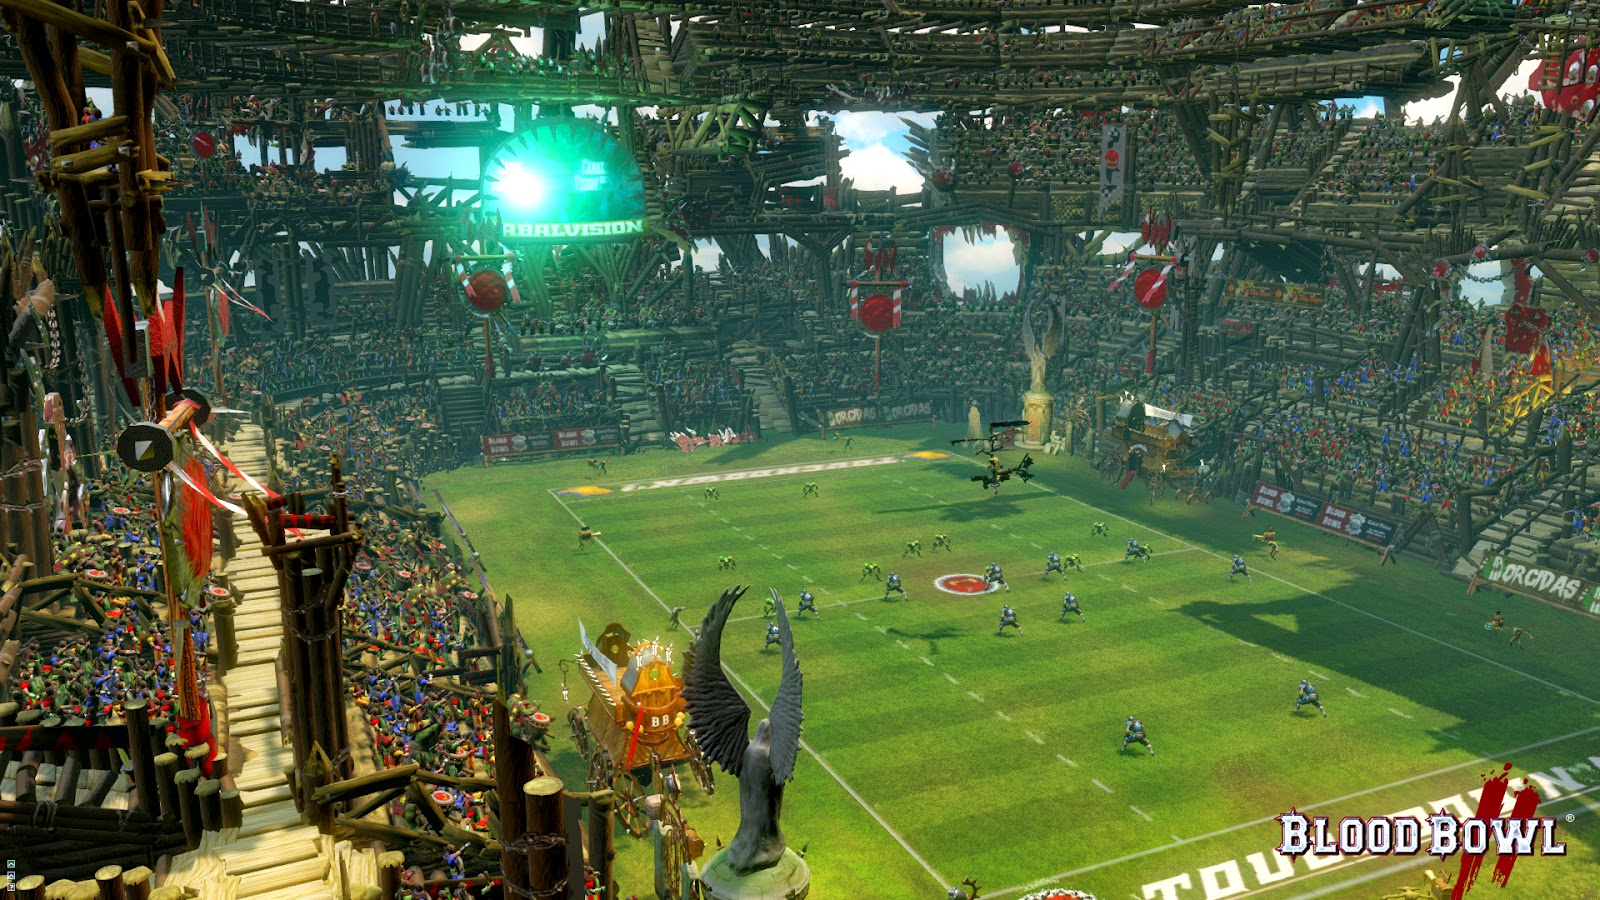 Screenshot for the game Blood Bowl 2 [v 3.0.219.2 + 17 DLC] (2015) PC | RePack from R.G. Mechanics